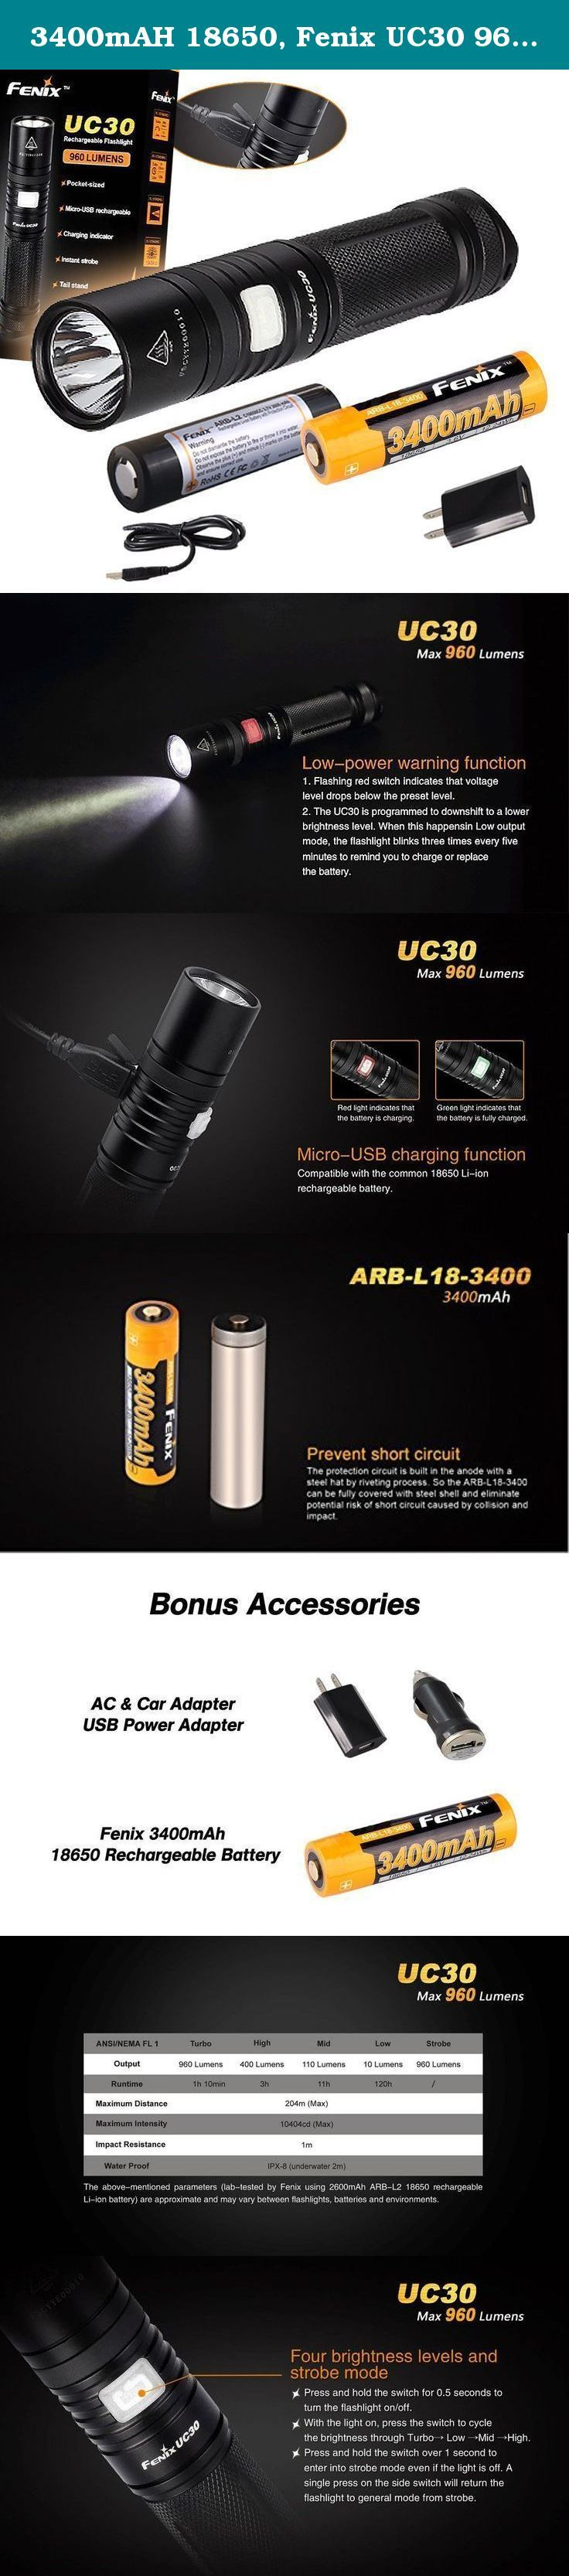 3400mAH 18650, Fenix UC30 960 Lumens Cree XM-L2 LED Rechargeable LED Flashlight w/ 2600mAh 18650, Holster, Built-in USB Charger, and Bonus Fenix 3400mAh Rechargeable Battery, Lumen Tactical AC CAR Power Adapter. Latest release from Fenix, UC30 produces the max output to 960 lumens with a high capacity 2600mAh rechargeable battery and built-in charger. Very compact, fits your palm and pockets perfectly. It is powerful, compact and rechargeable...what else do you need from a high quality...